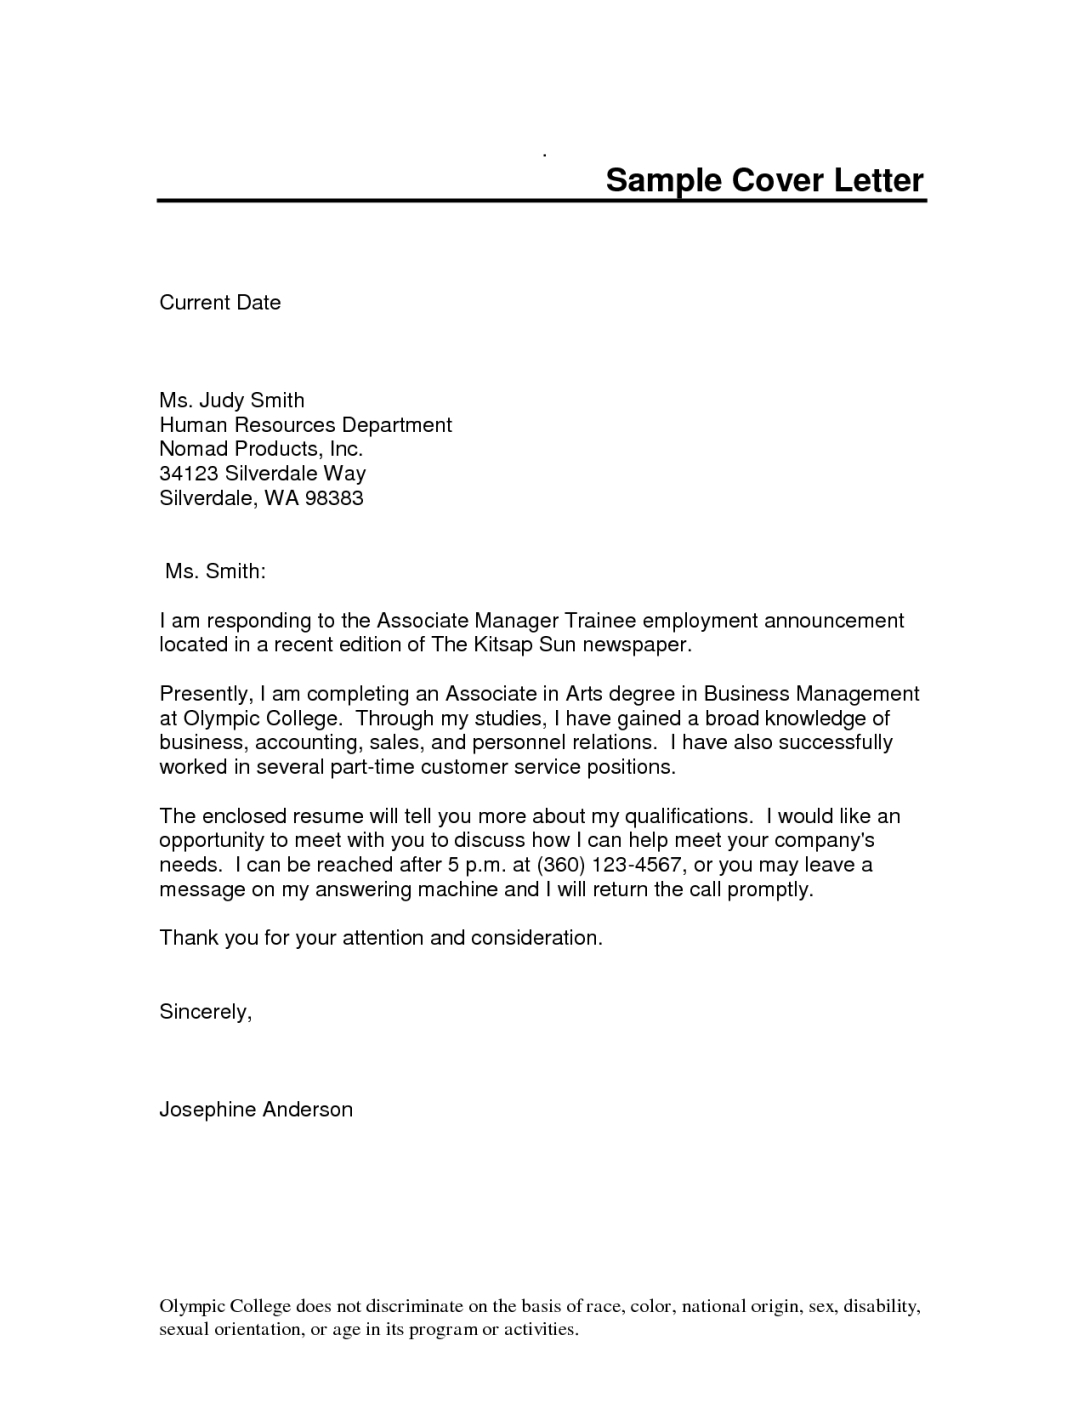 Fillable Cover Letter Template - Microsoft Word Resume Cover Letter Template Modern Microsoft Word